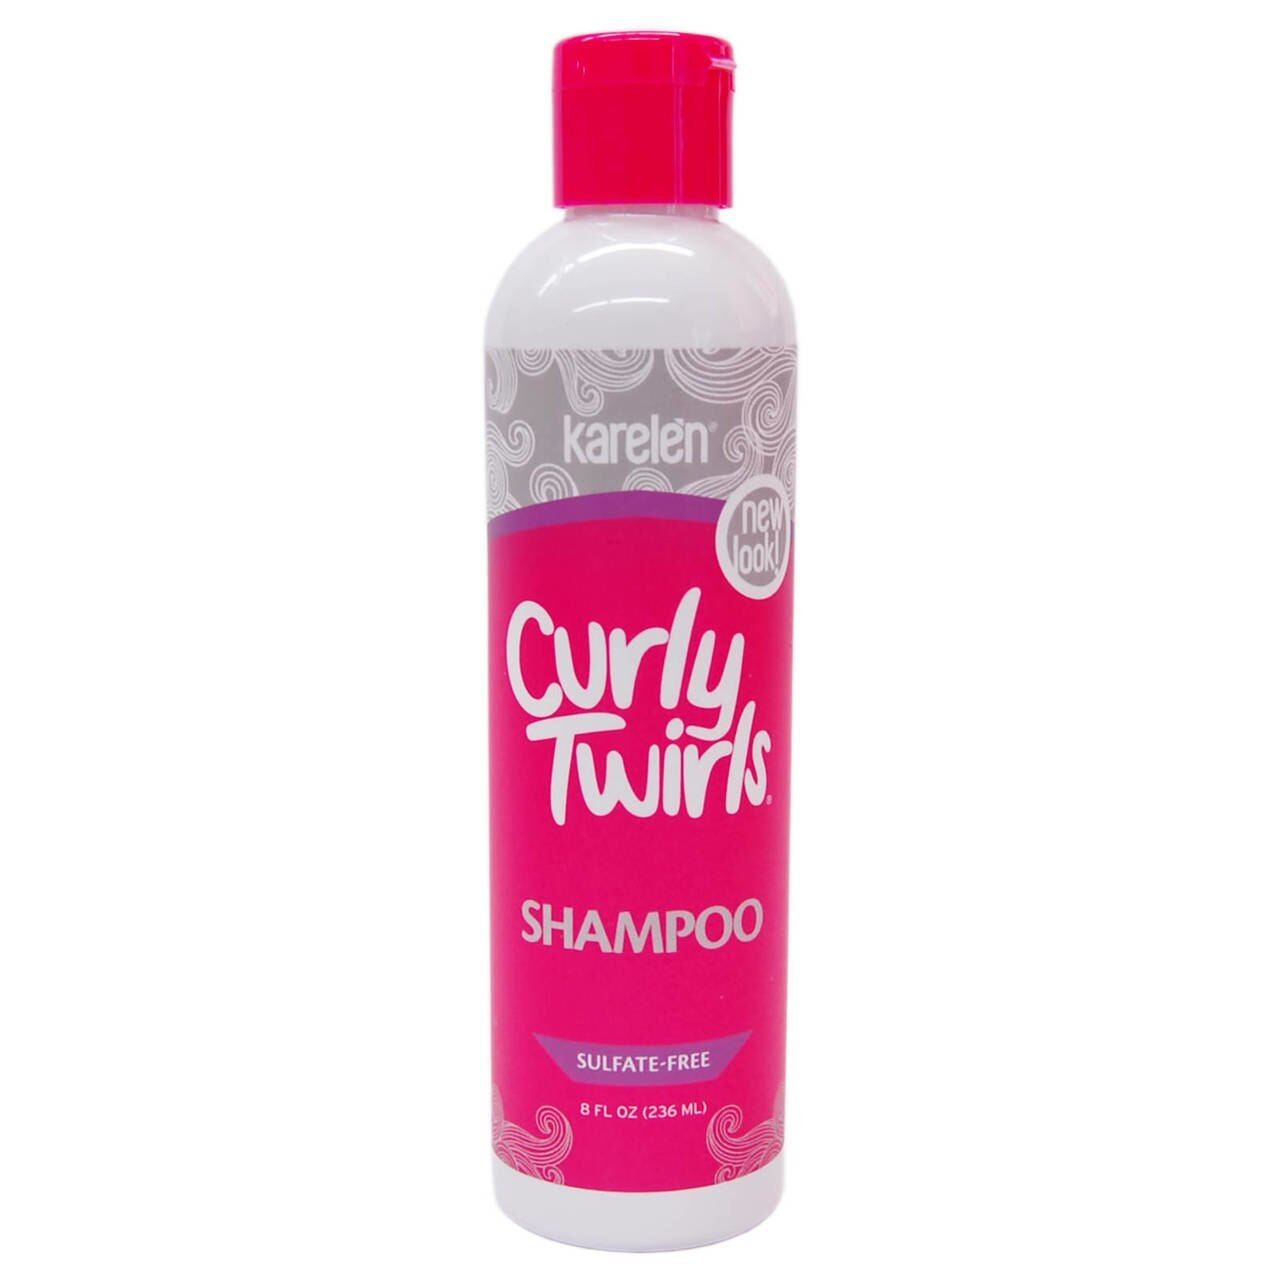 Curly Twirls Sulfate-free Shampoo for Curly Hair 8 oz